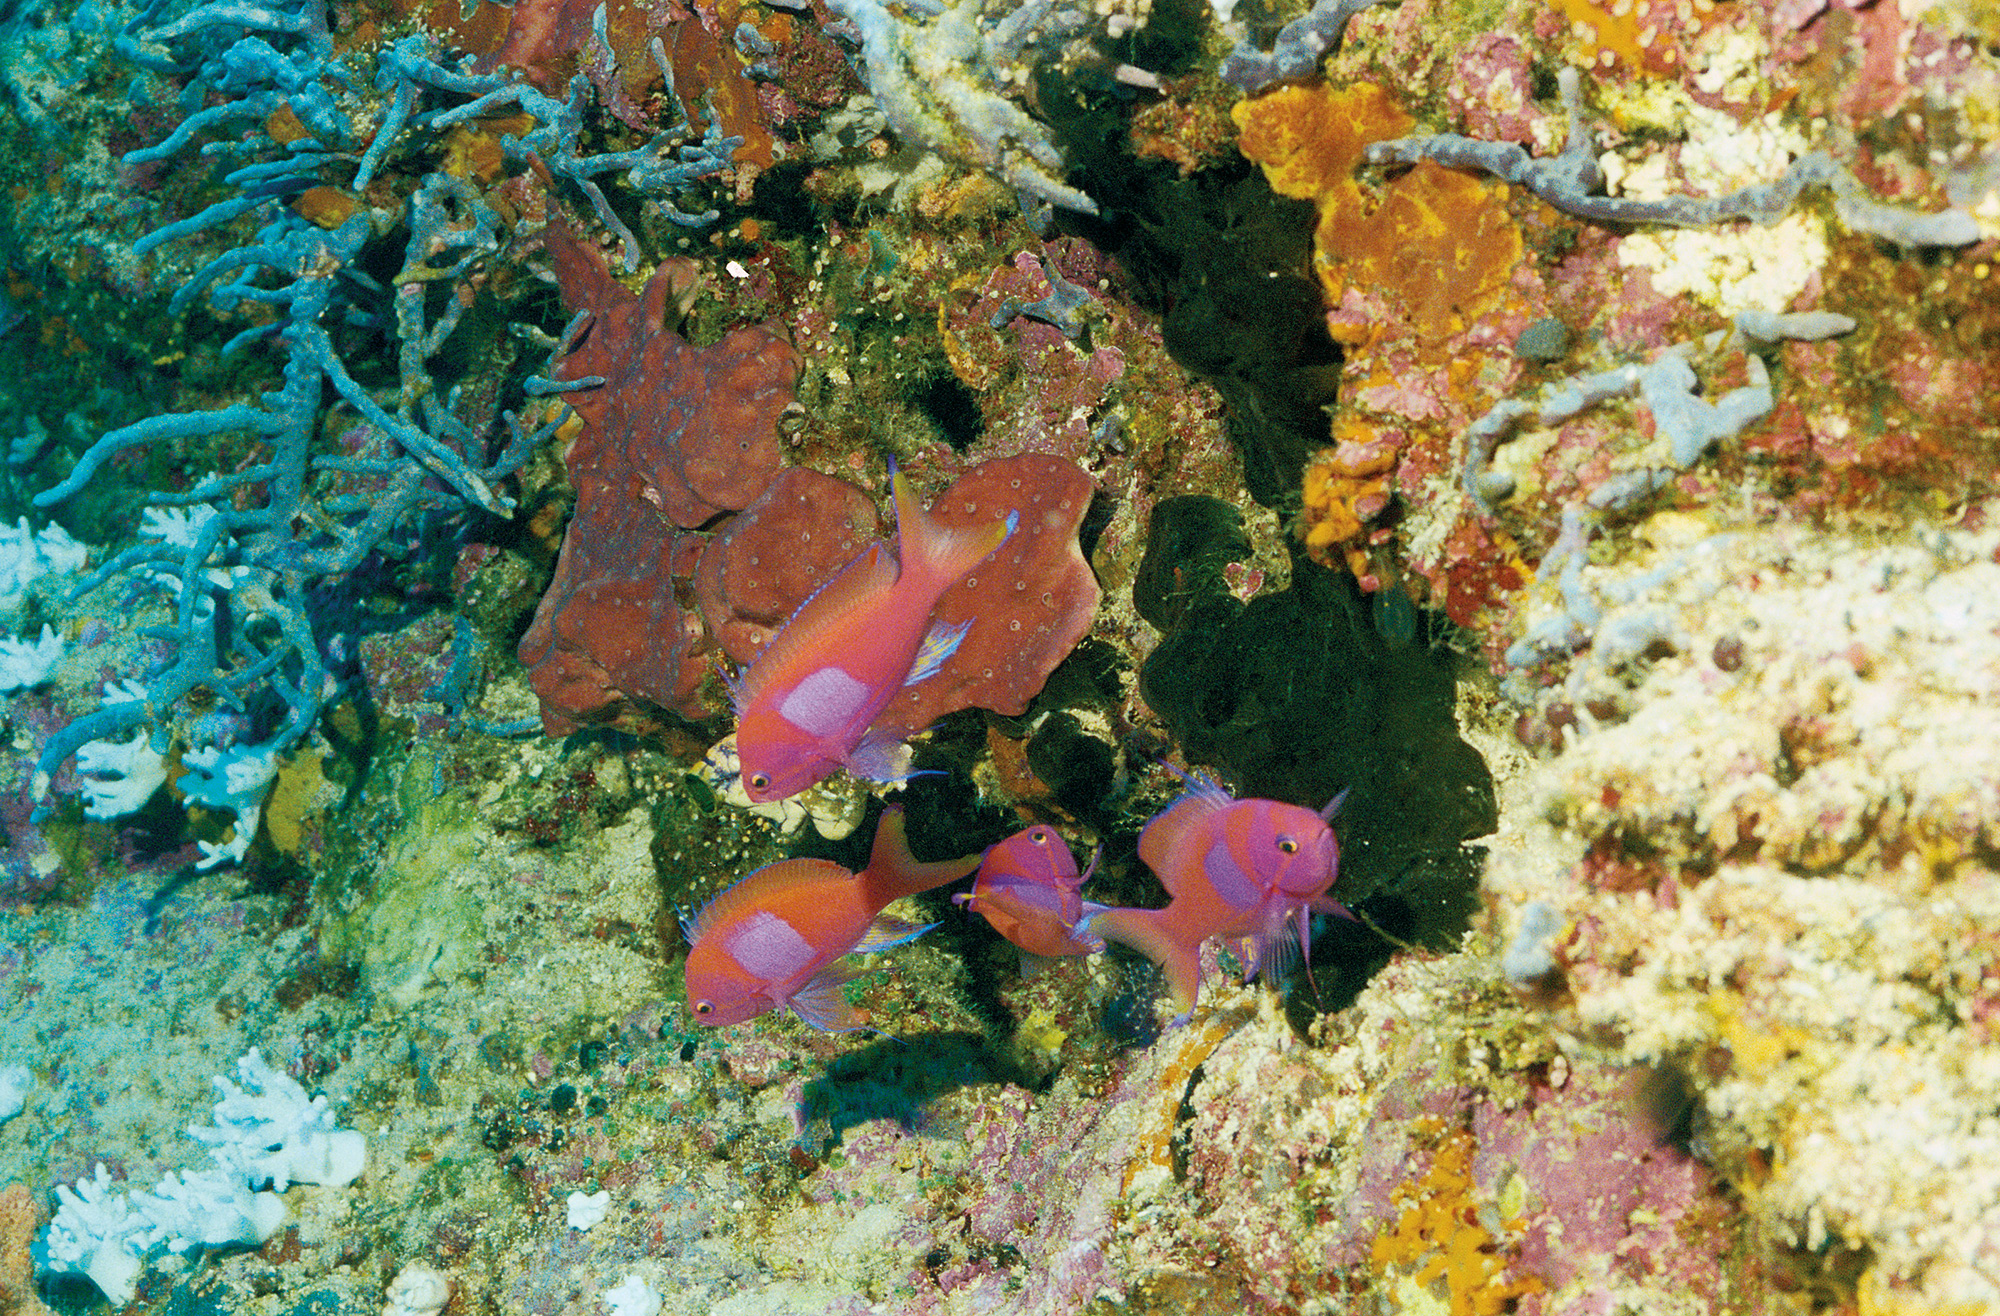 Photograph of Squarespot Anthias in Papau, New Guinea by Sam Johnson